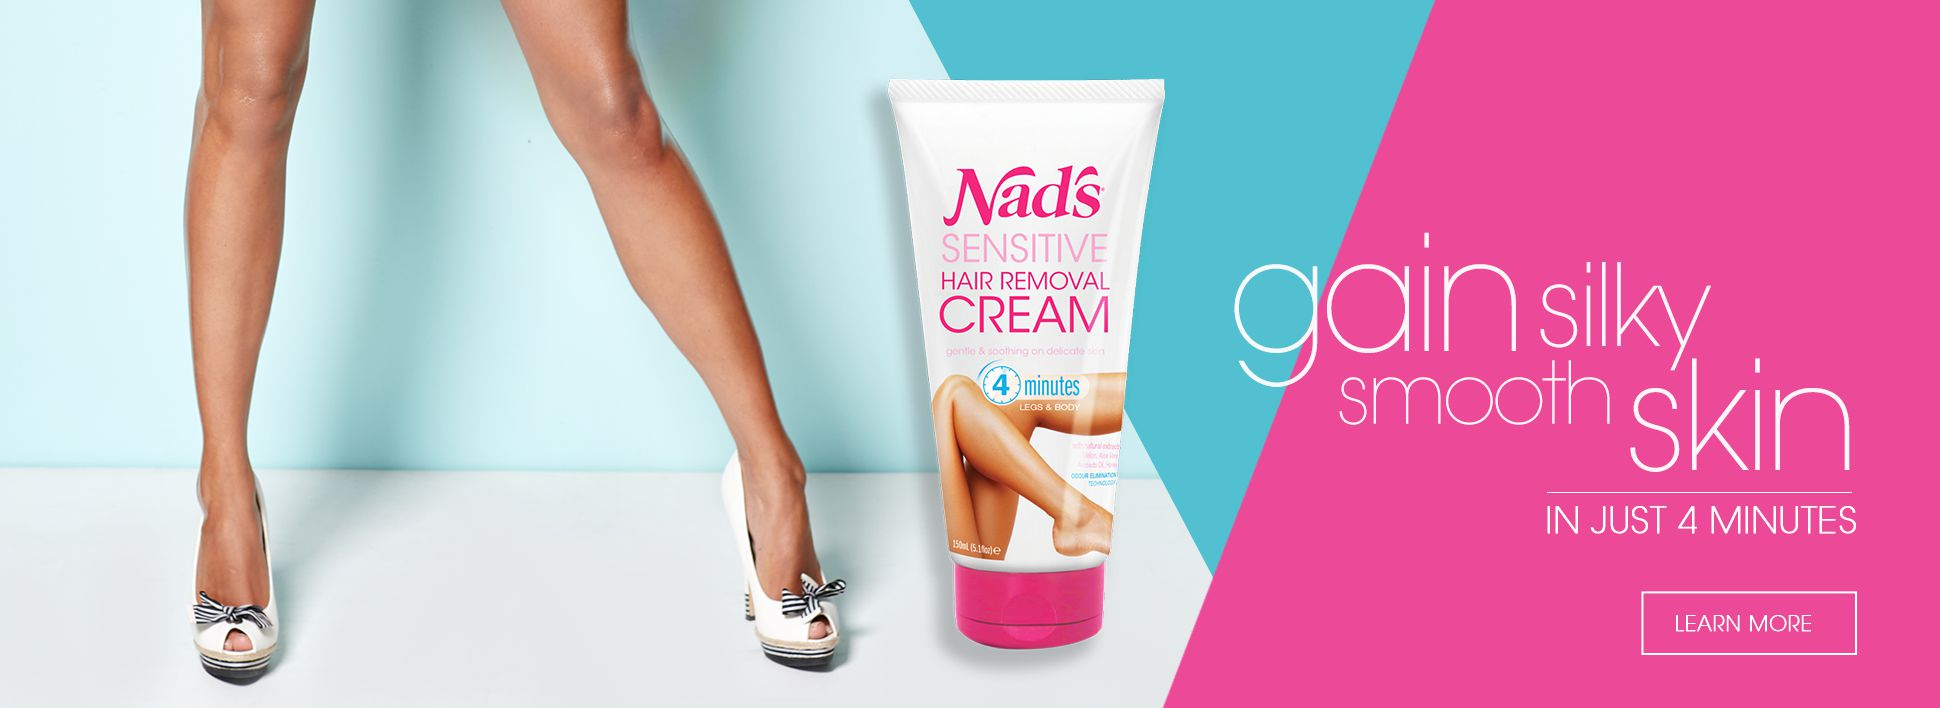 Nad's New Sensitive Hair Removal Cream - Gain Silky Smooth Skin